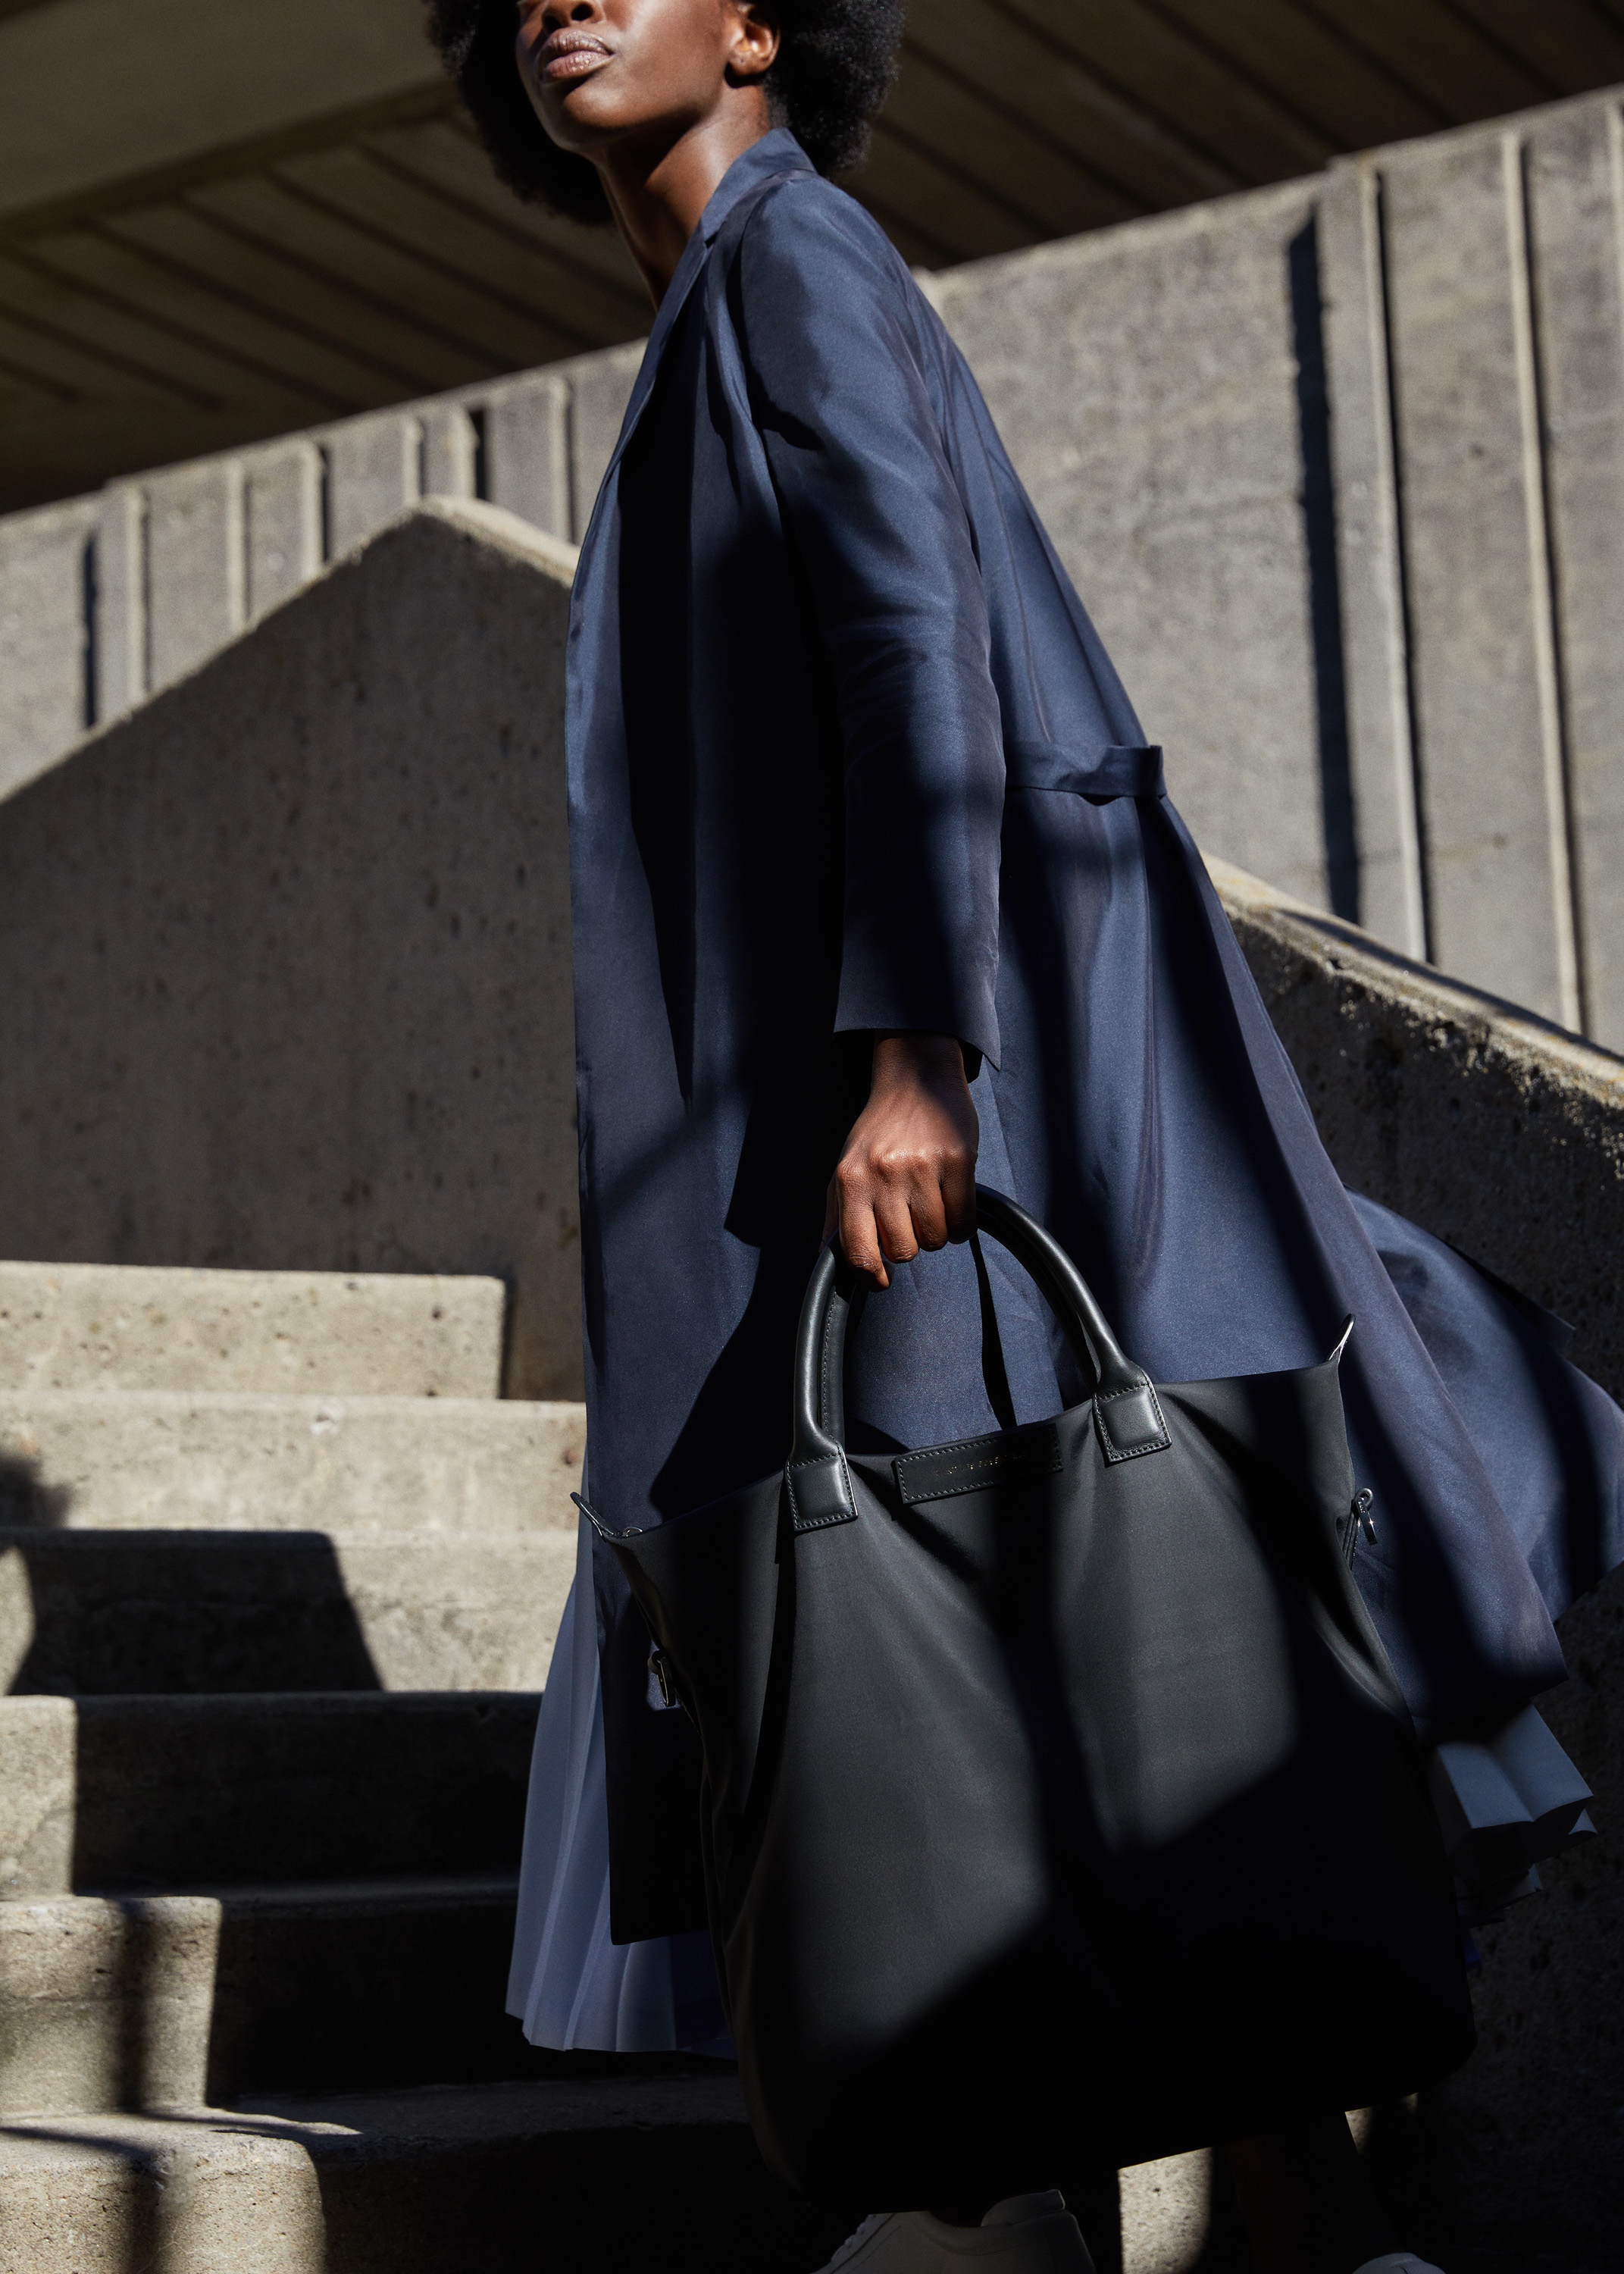 Competition: win a set of Nylon Tech bags from Want Les Essentiels